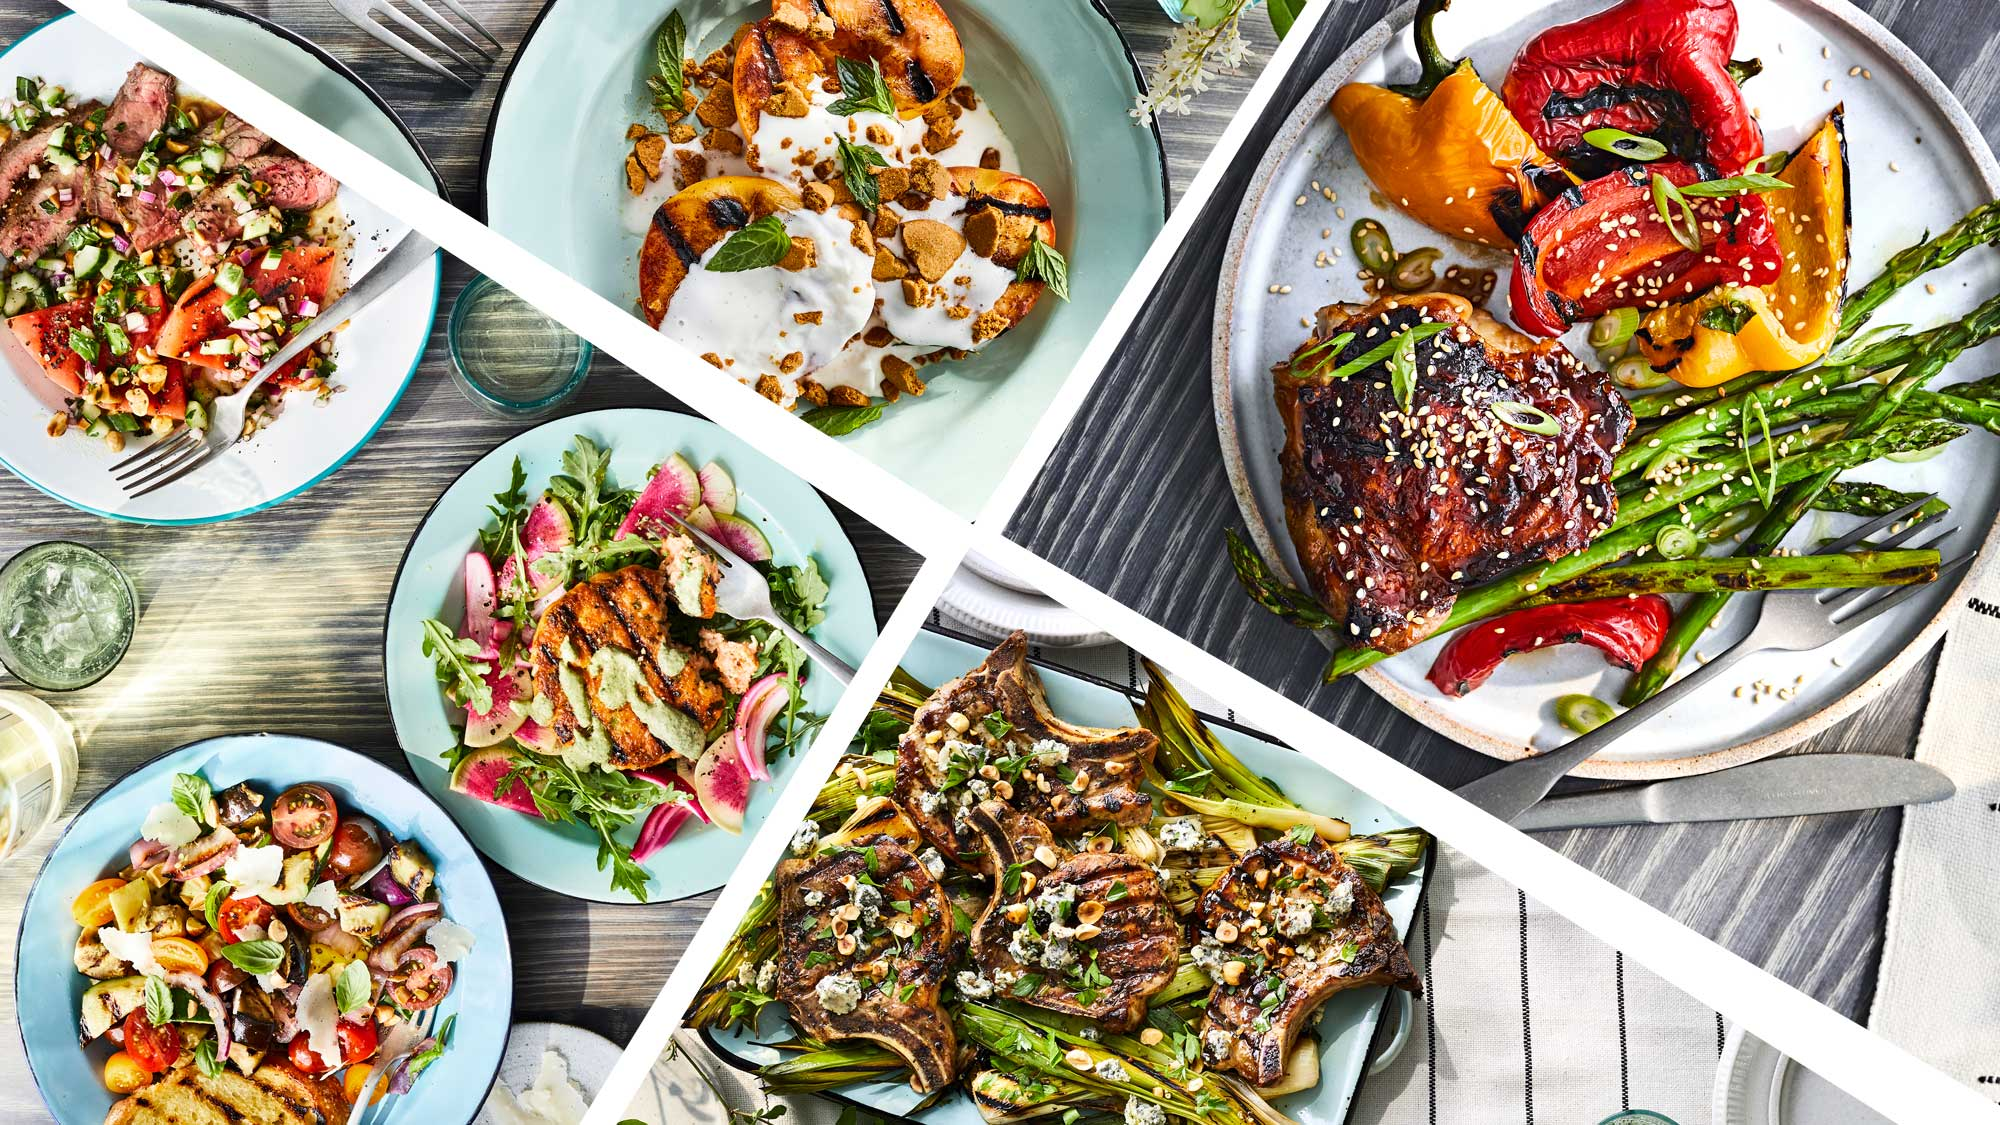 grill grilling recipes woman health diet food health-summer-2019